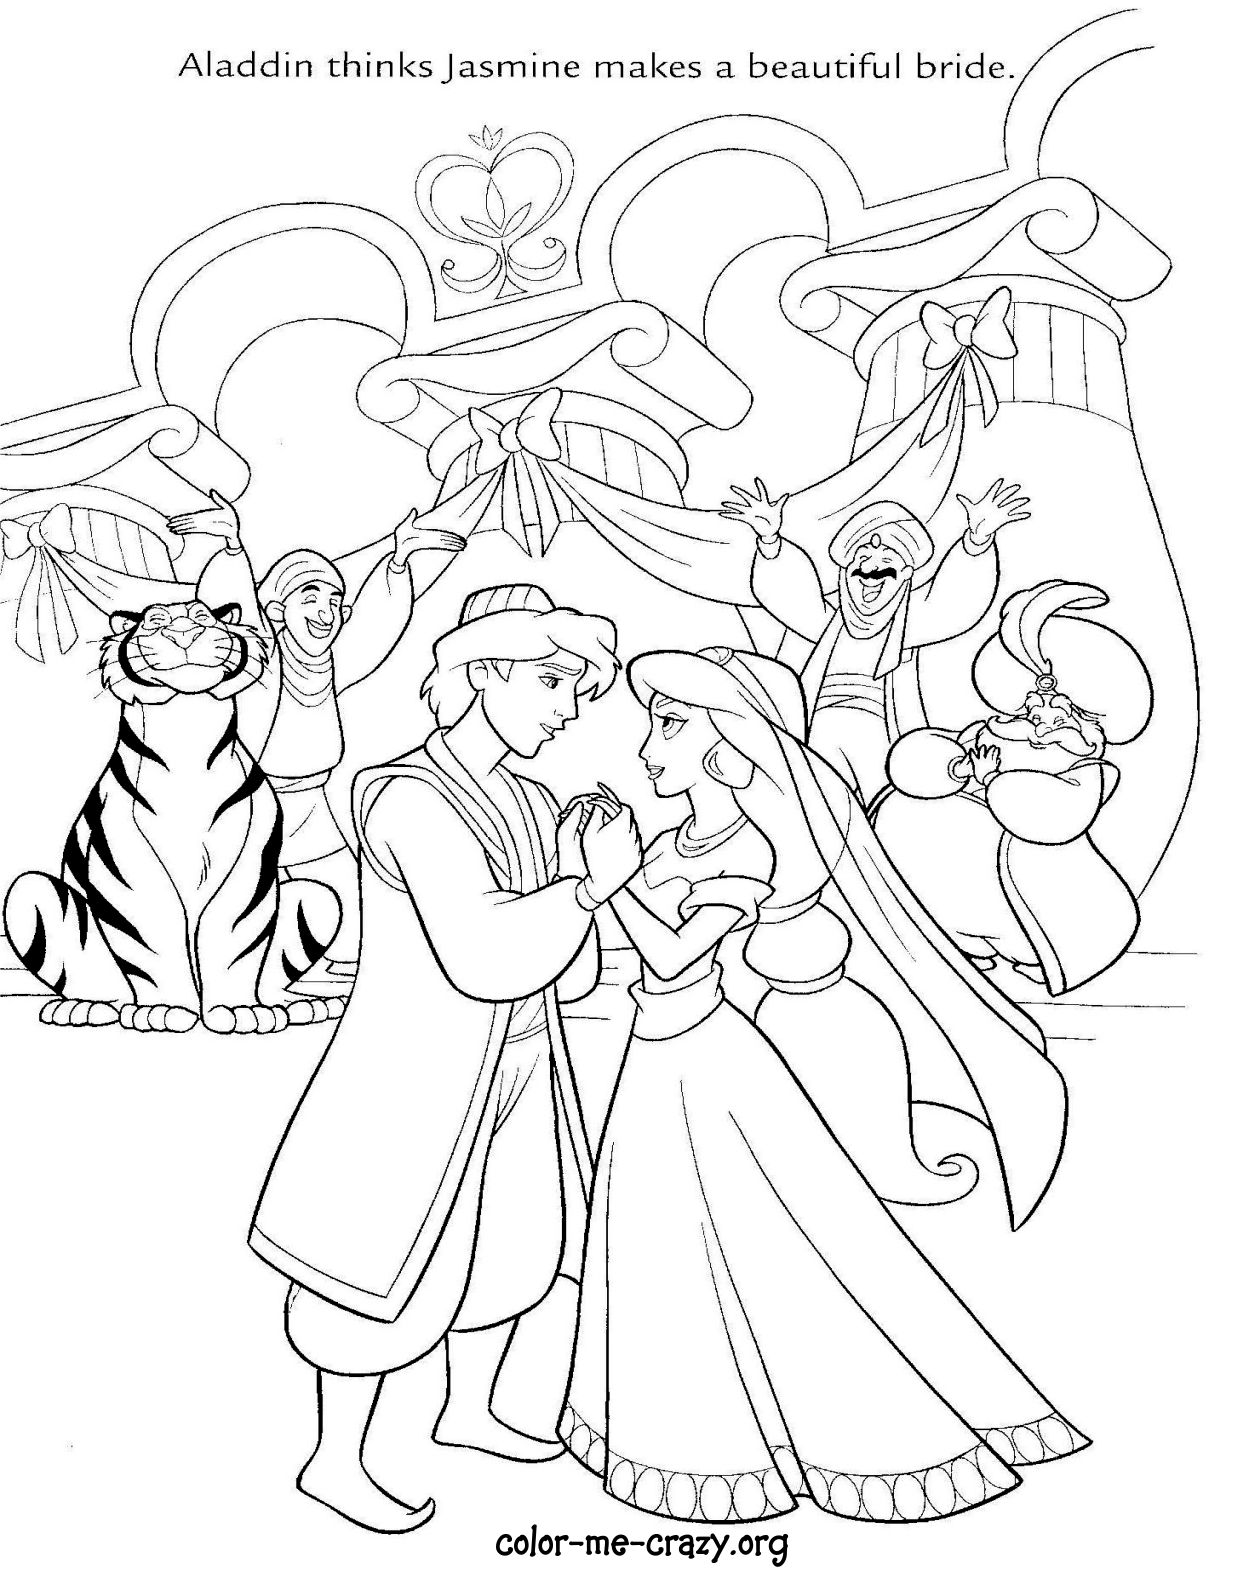 wedding day disney wedding coloring pages pin by valma rowles on colouring pic39s wedding coloring coloring pages wedding wedding disney day